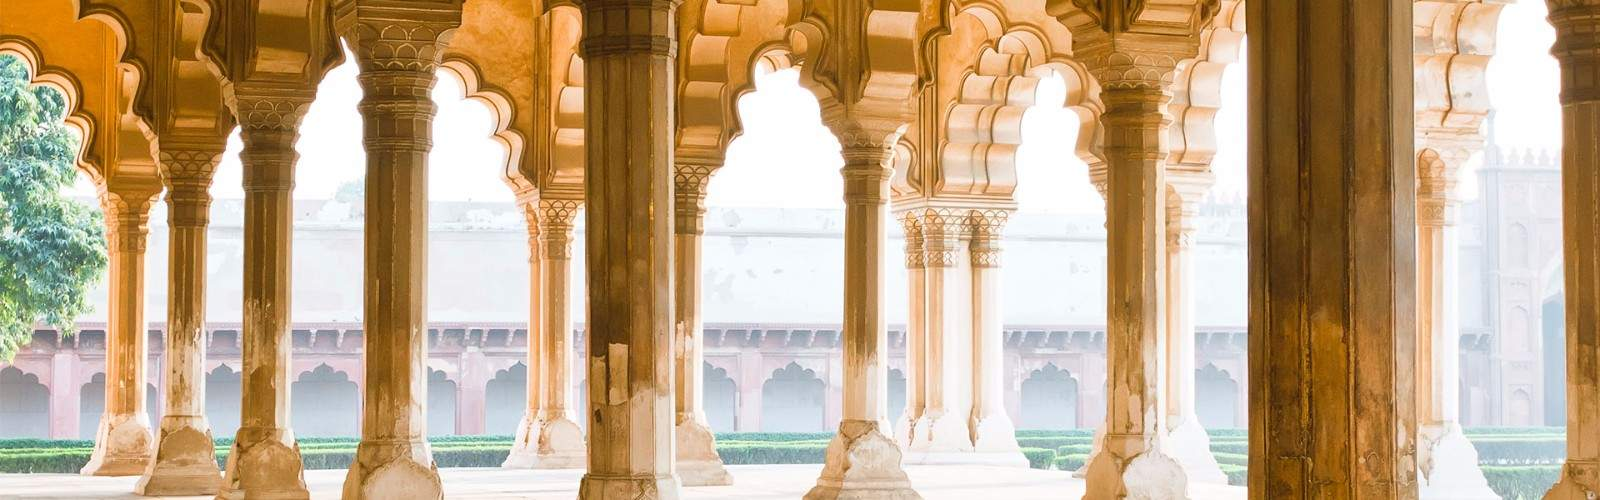 Agra Fort Holidays